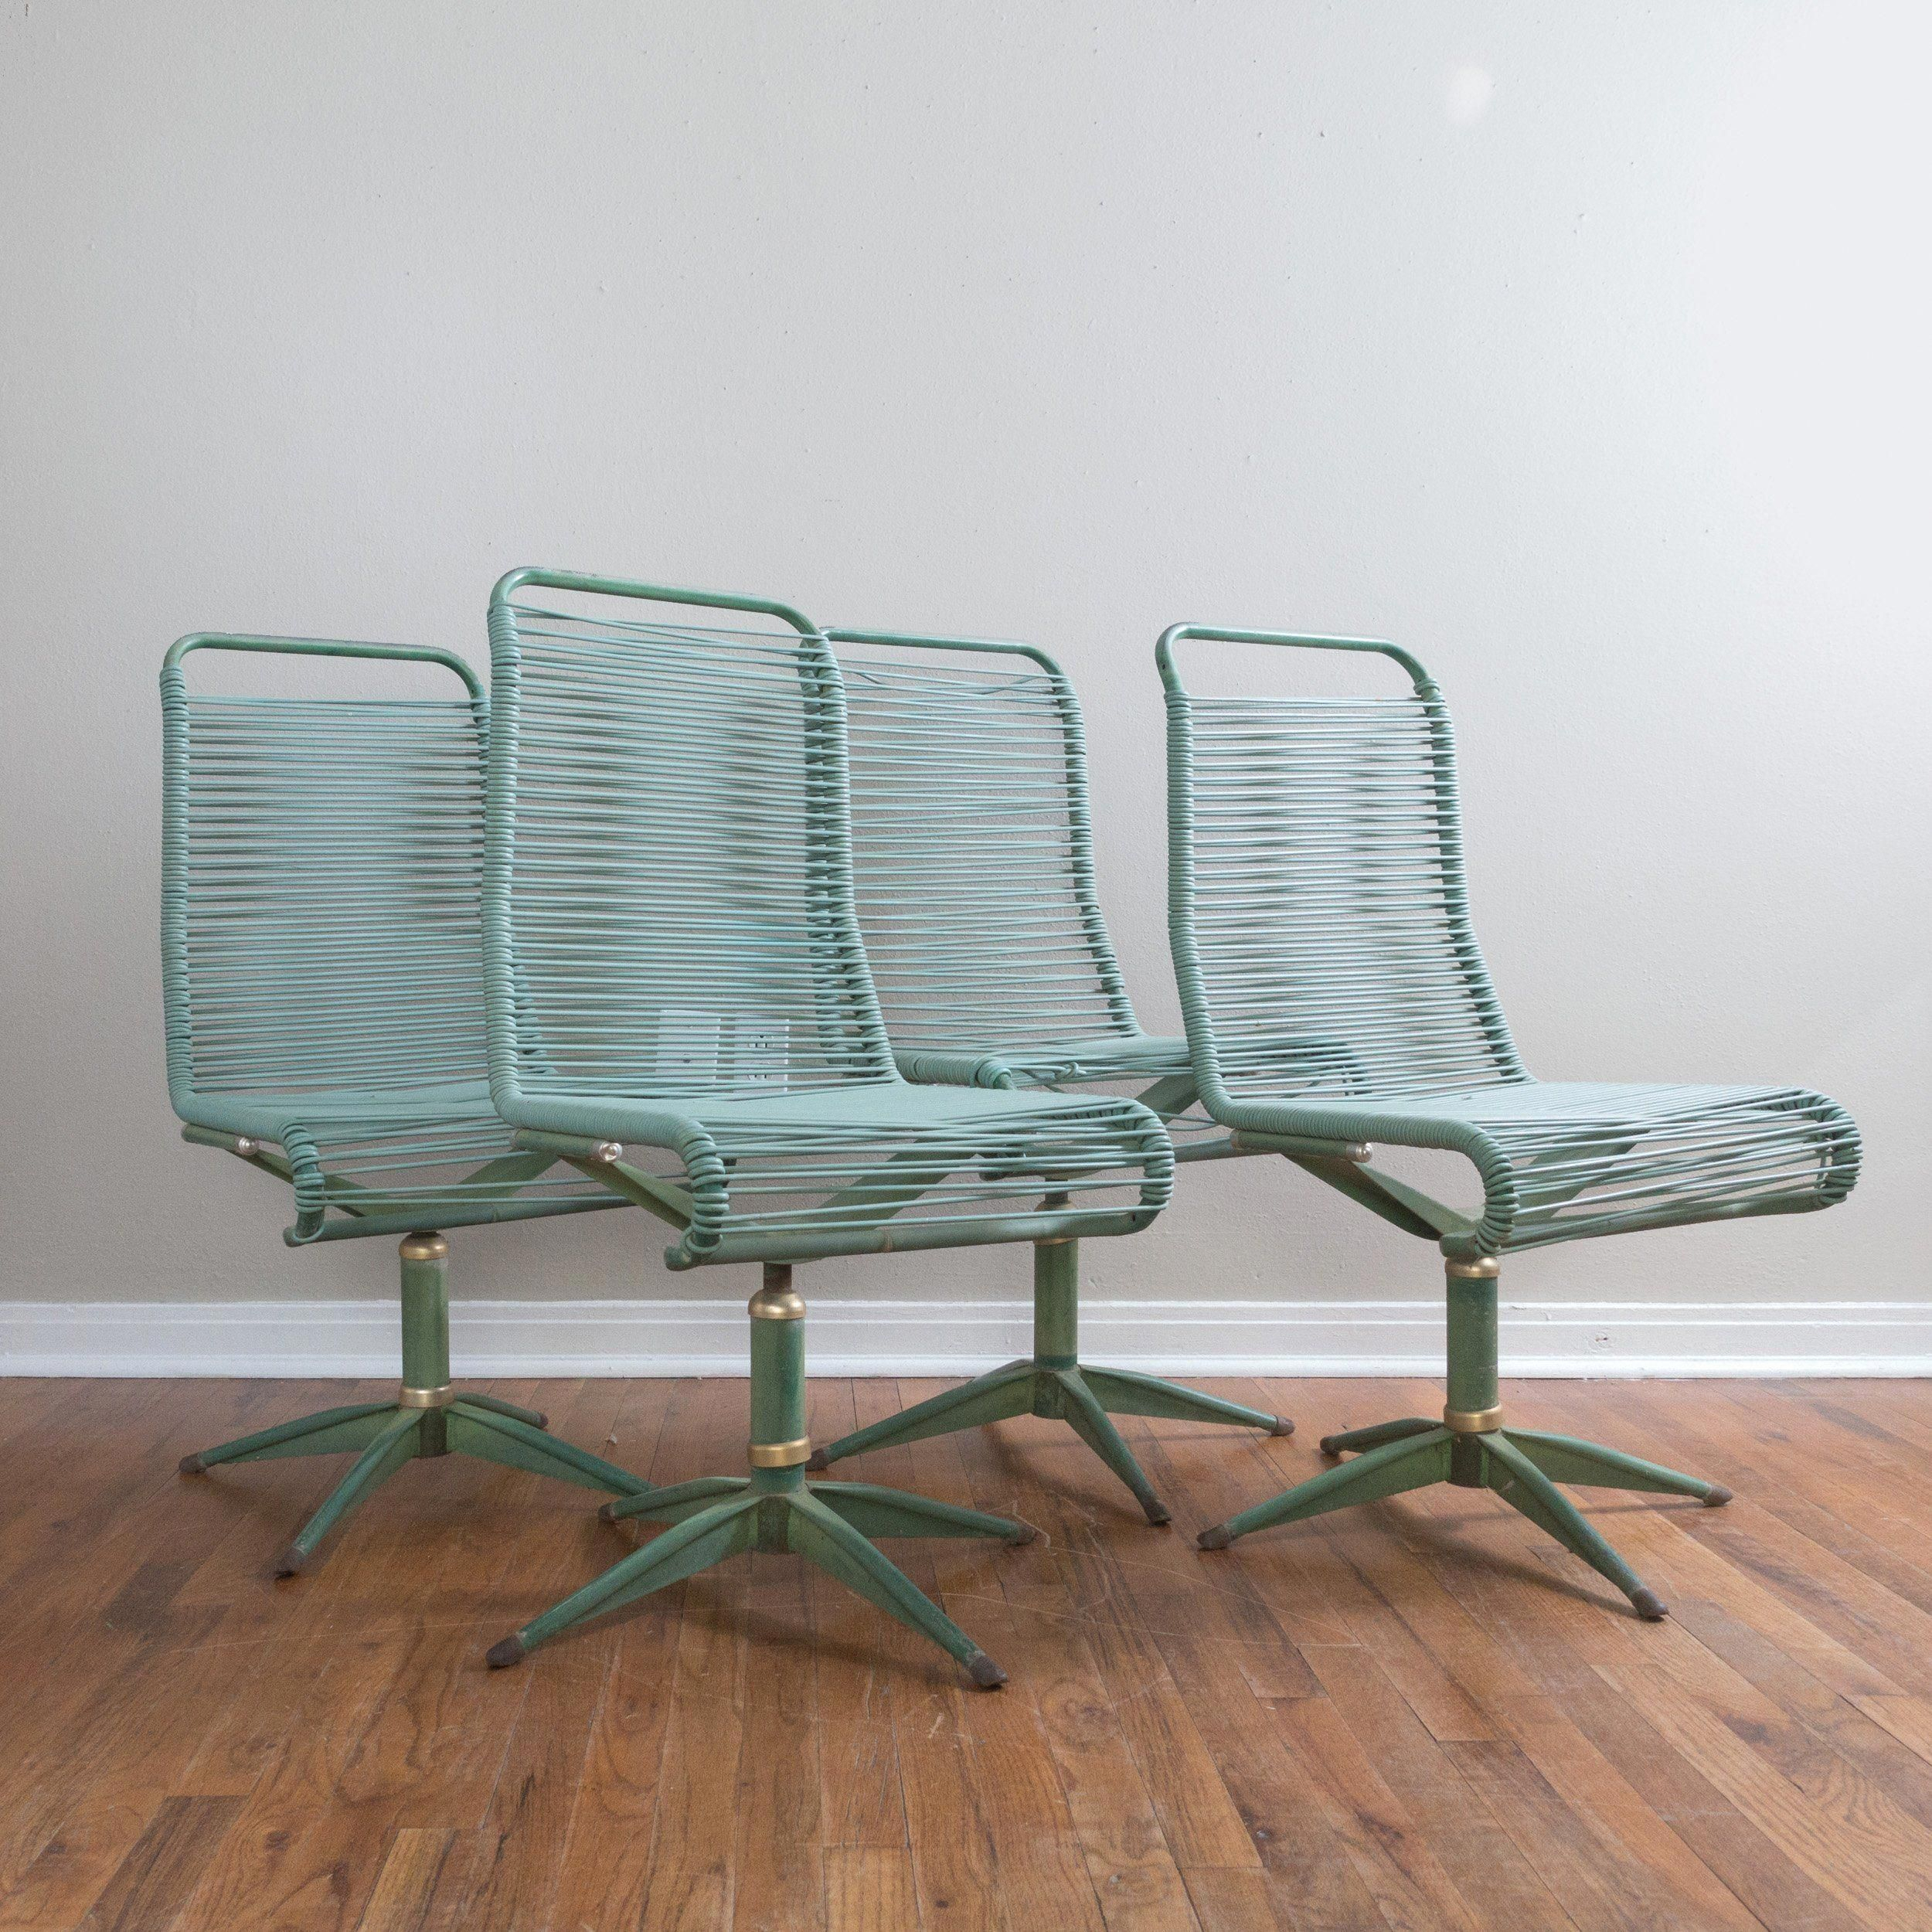 Set Of 4 Mid Century Ames Aire Green Patio Chairs Cabana Star Line With Regard To Ames Arm Sofa Chairs By Nate Berkus And Jeremiah Brent (View 8 of 20)